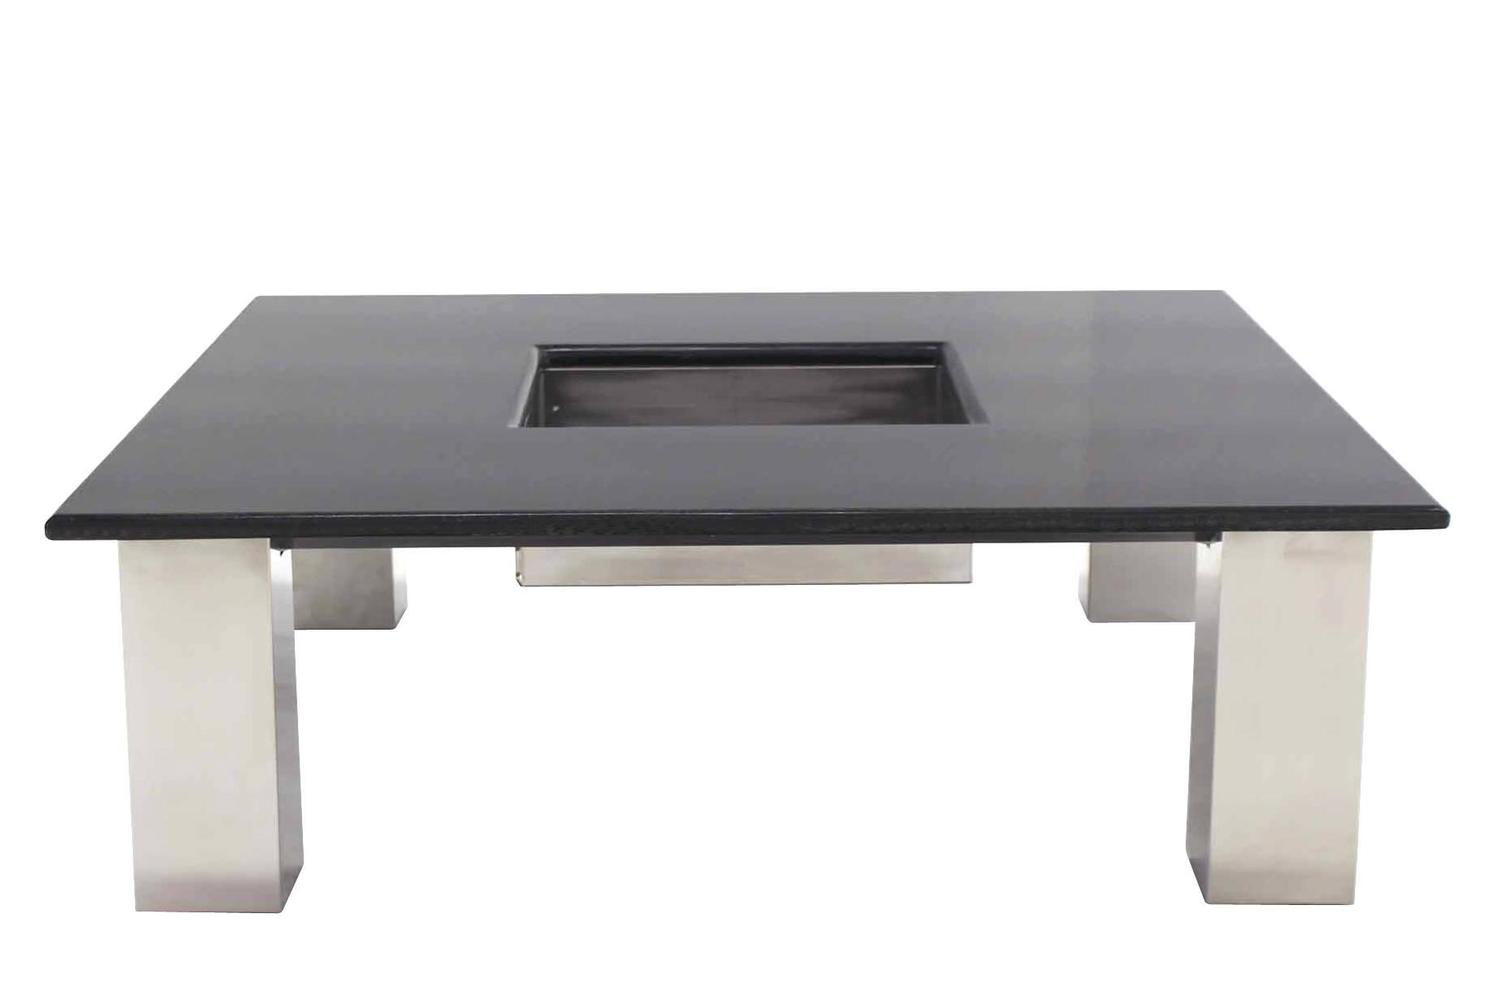 Large Square Granite Top Coffee Table With Center Planter For Sale At 1stdibs